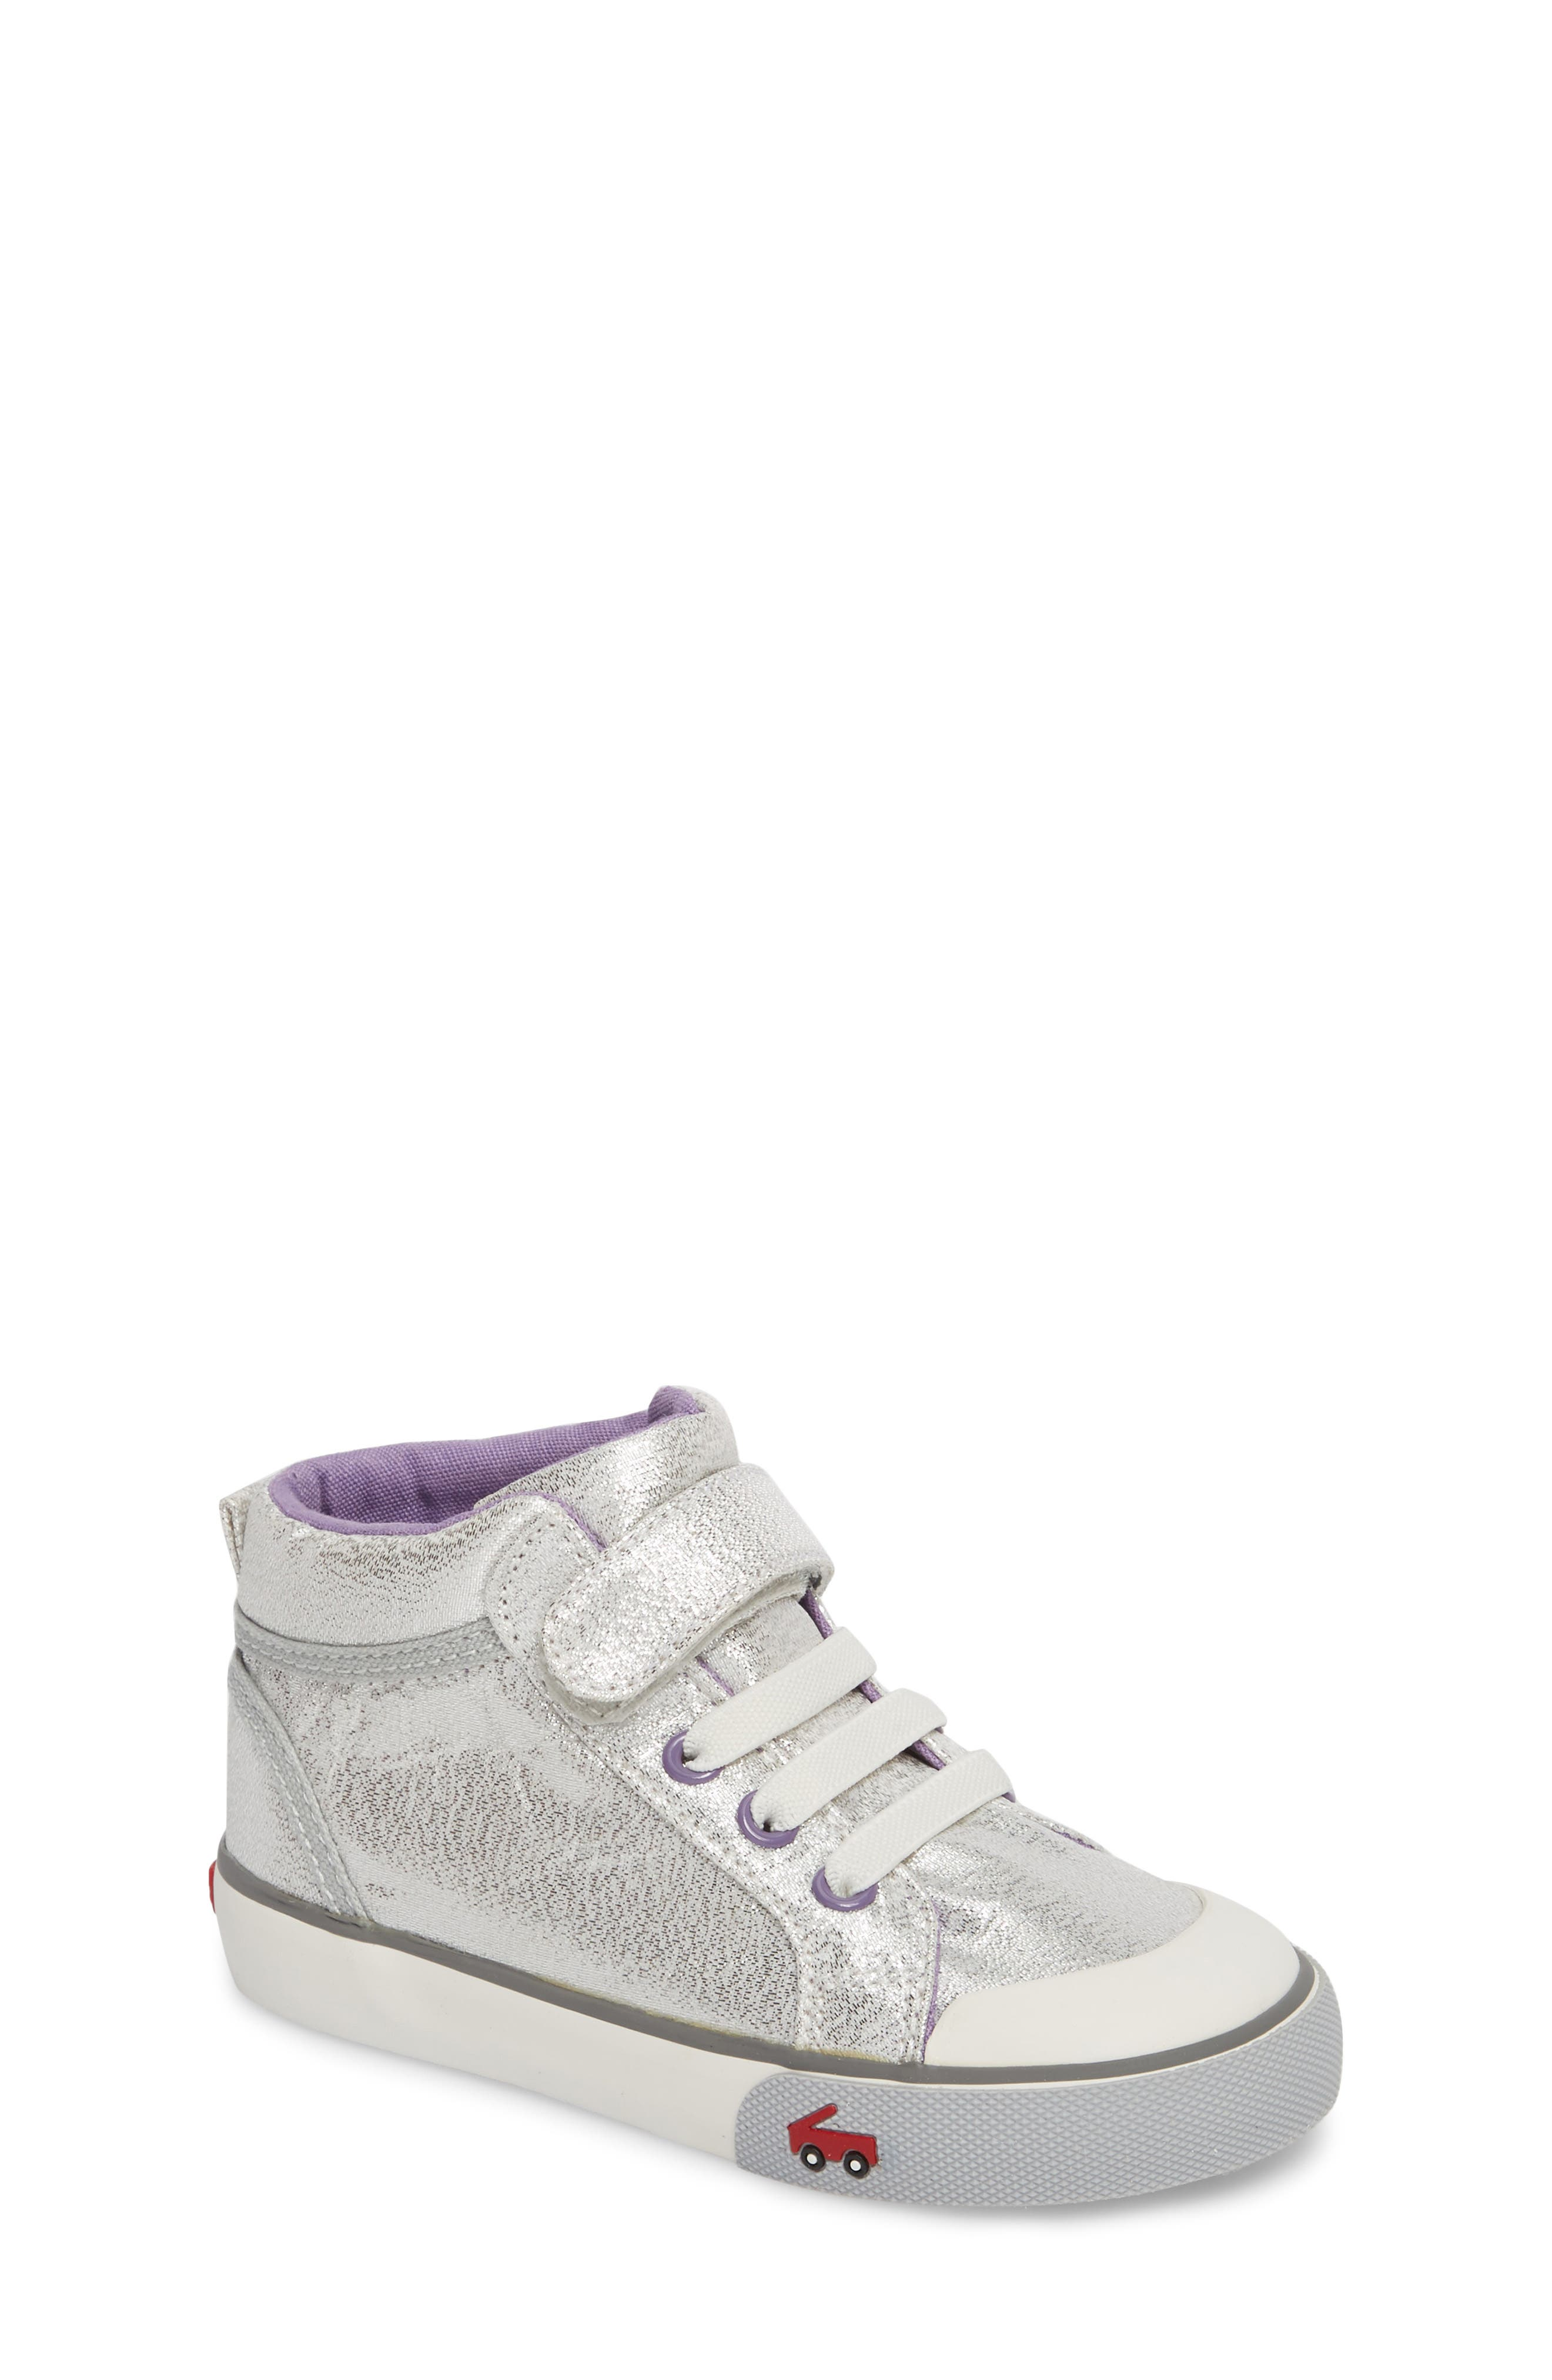 Main Image - See Kai Run Peyton Metallic Mid Top Sneaker (Baby, Walker, Toddler & Little Kid)